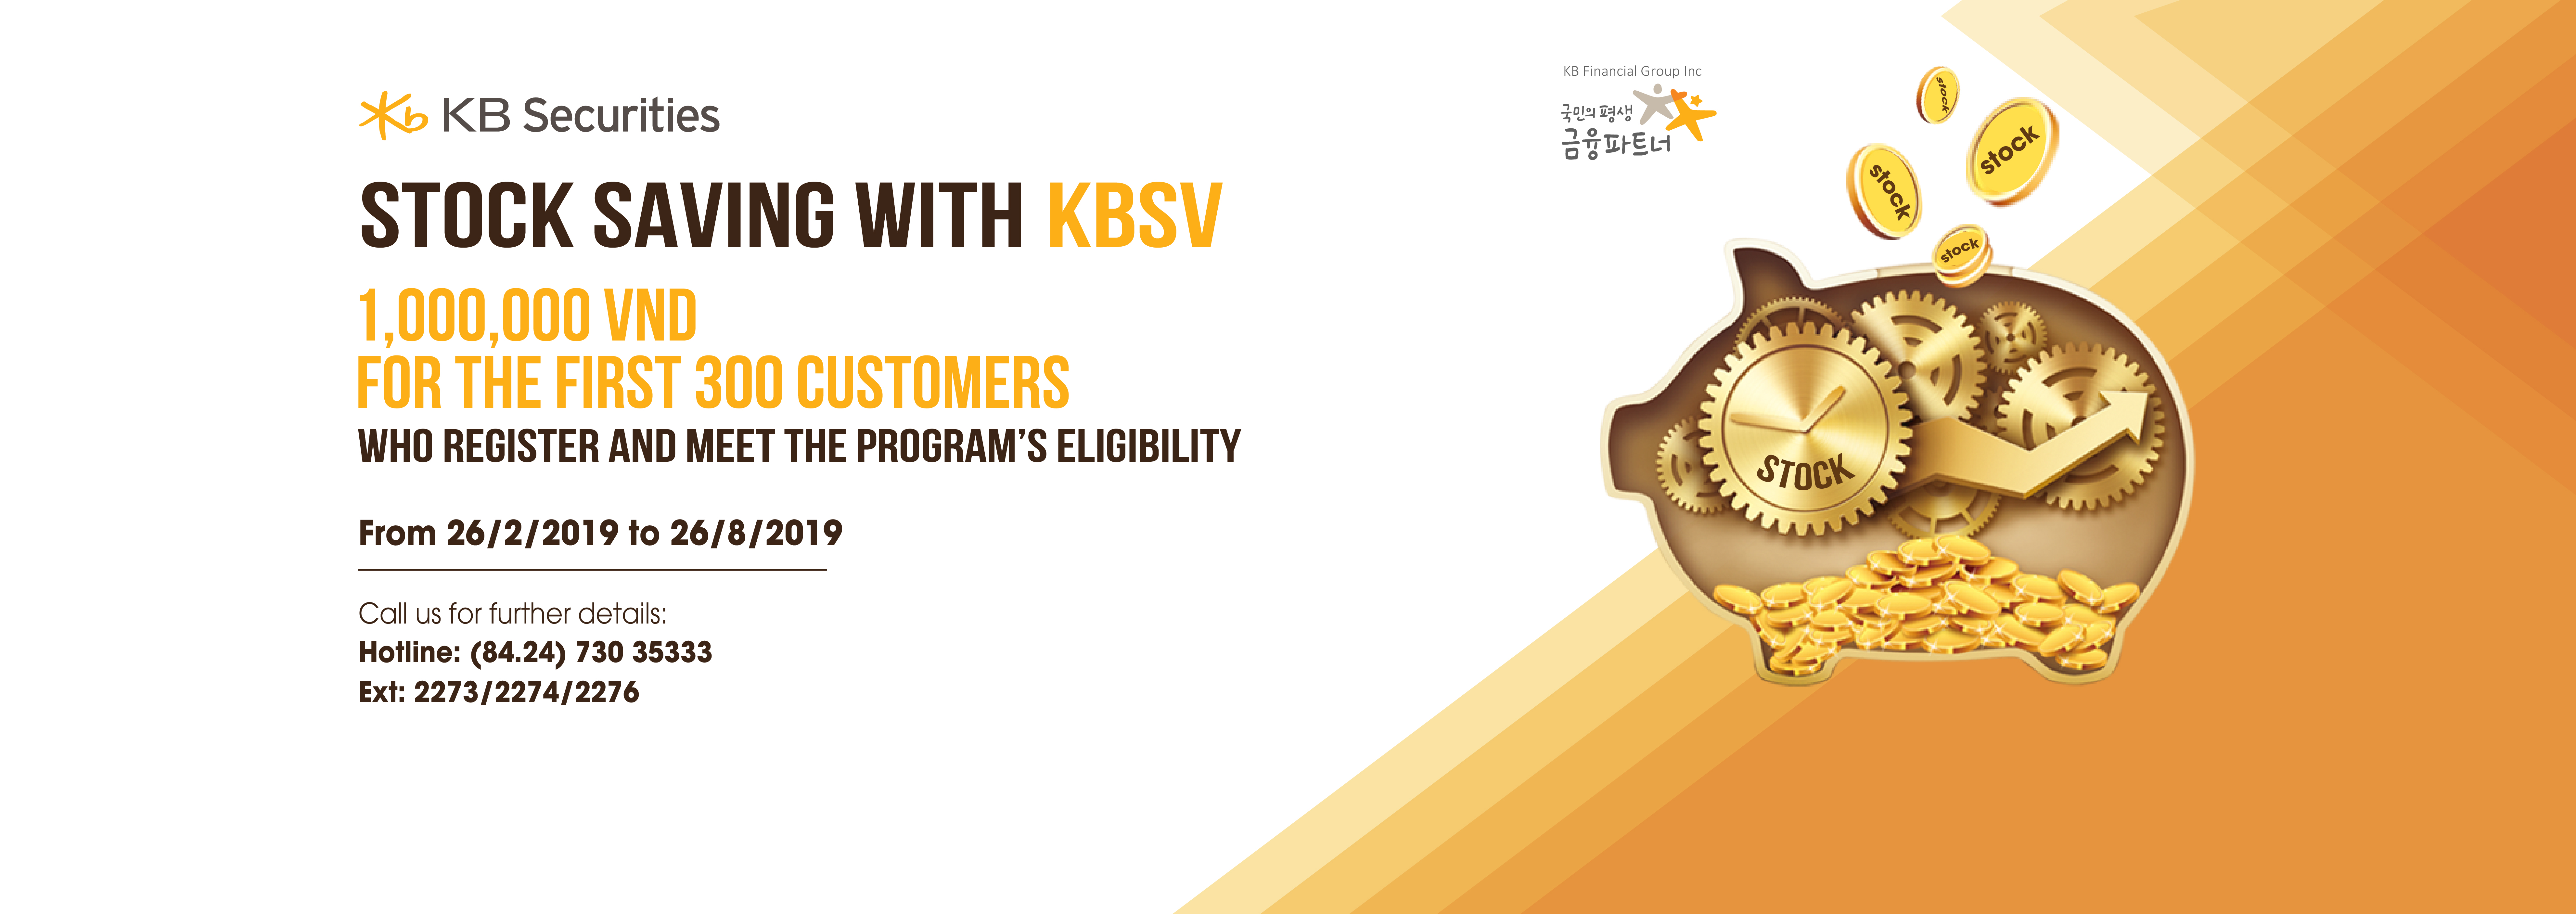 Stock Saving with KBSV